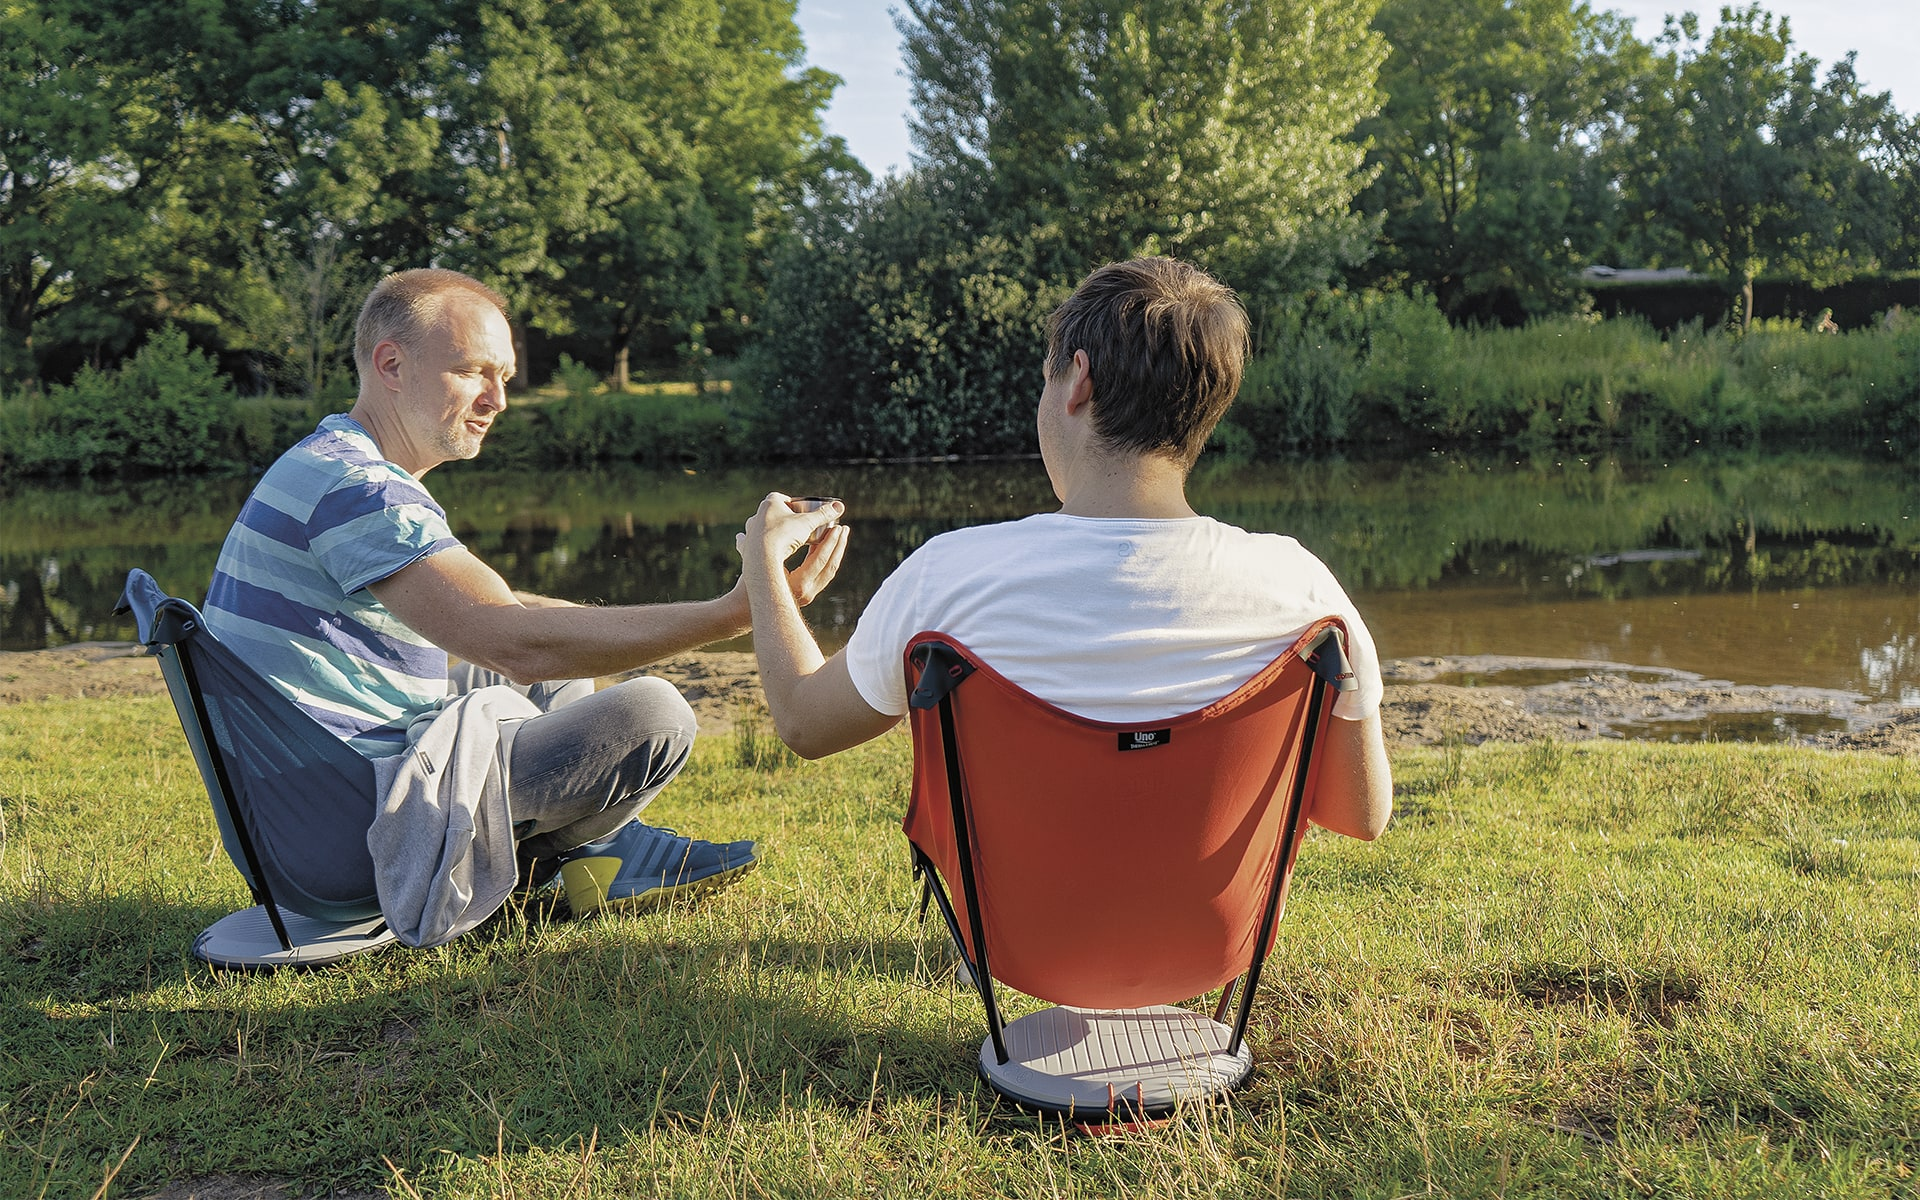 Two men in leisure clothing sitting in blue and red Therm-a-Rest Uno outdoor chairs by ITO Design near river, one handing the other a cup